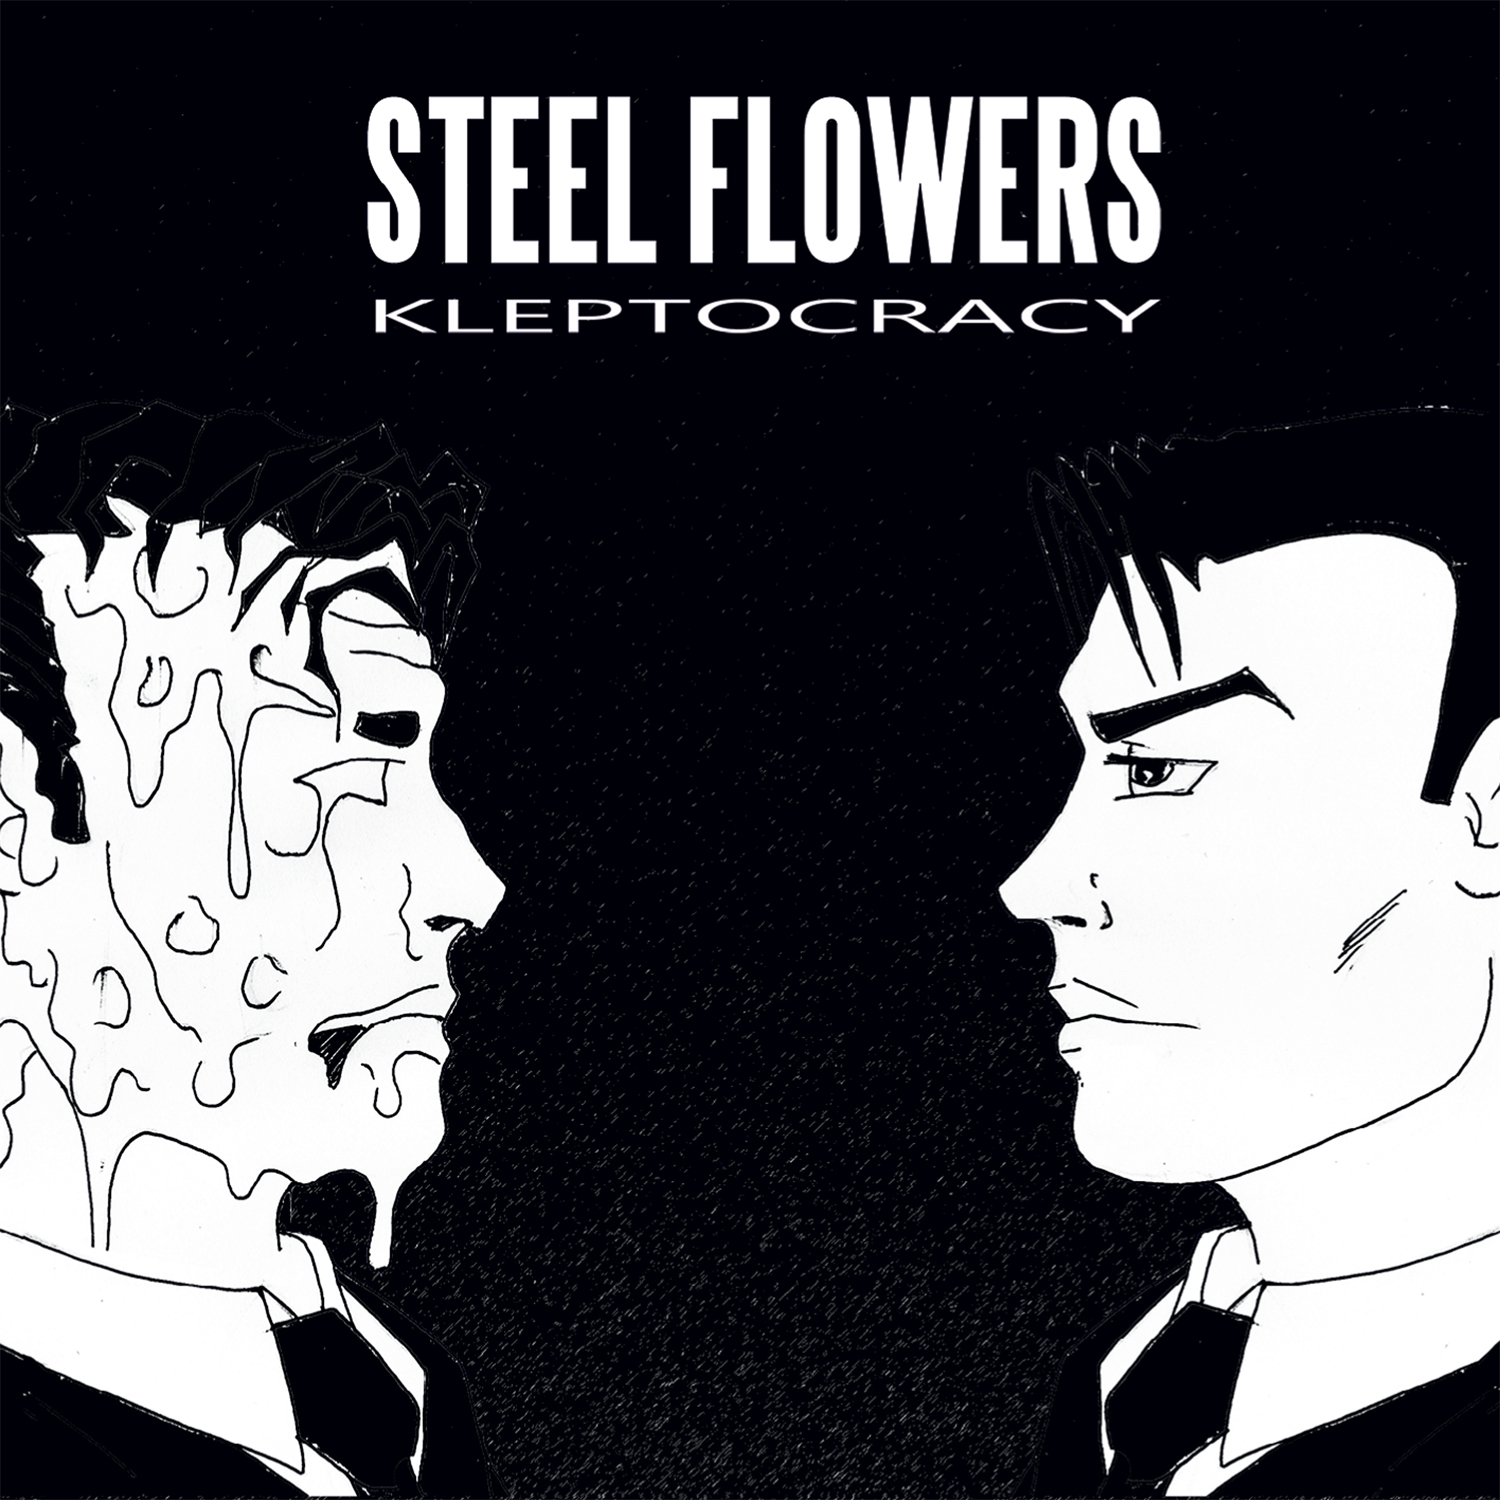 Steel Flowers-recensione-Kleptocracy